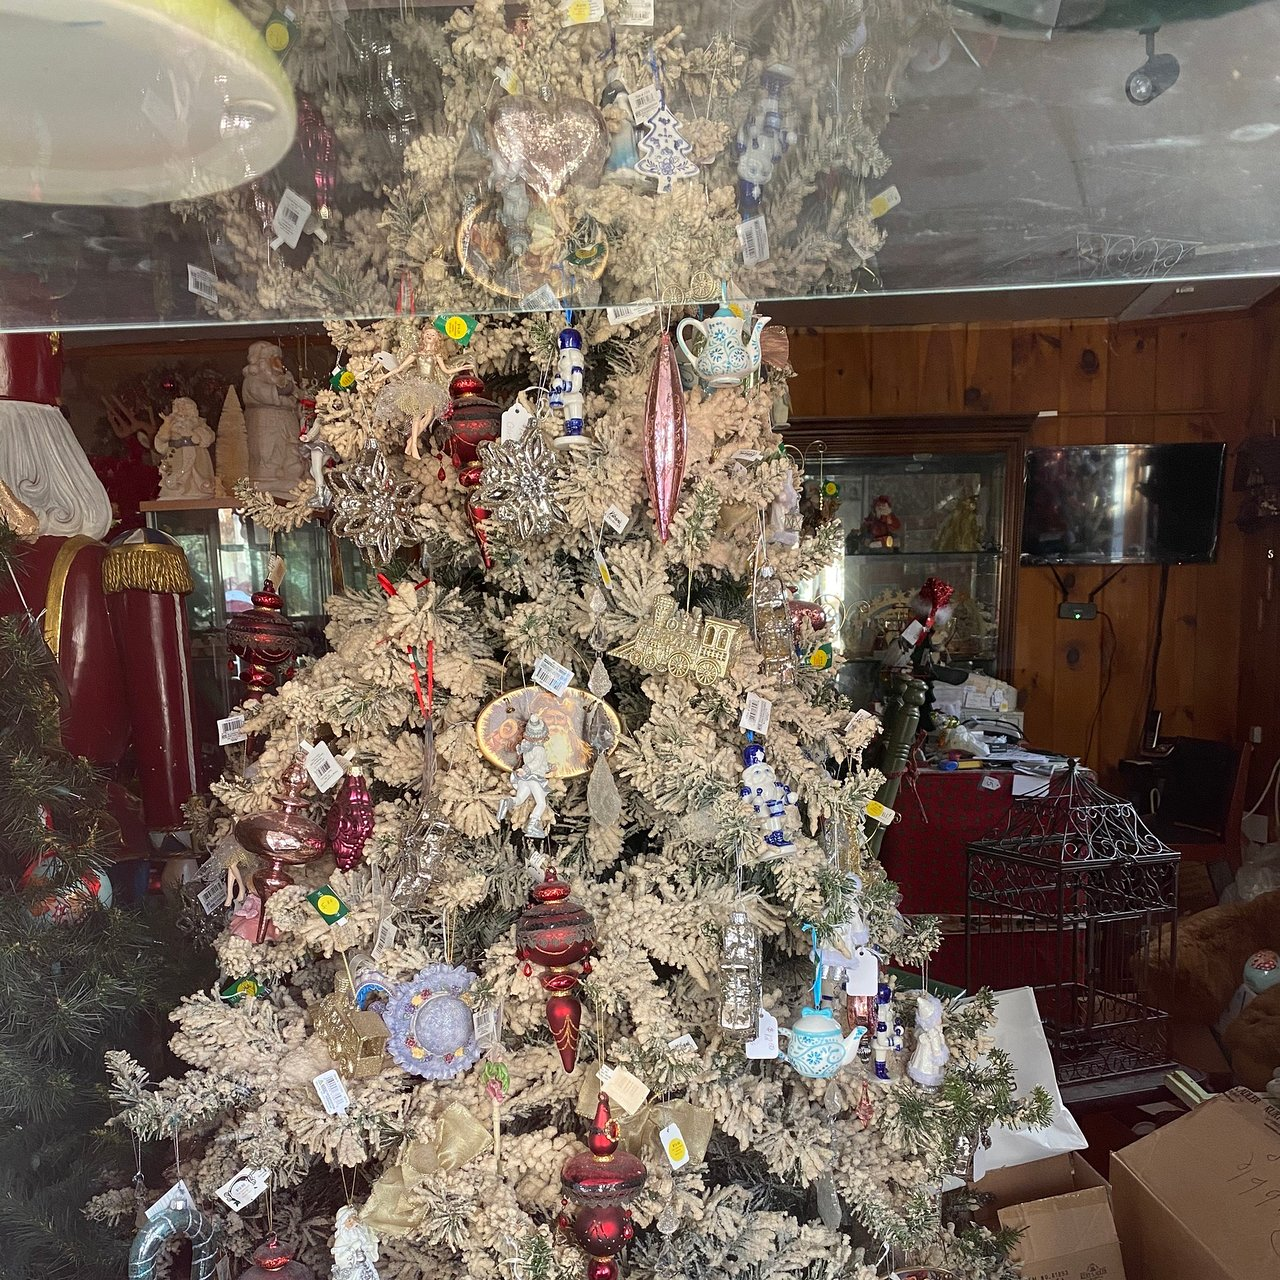 The Christmas Shoppe Helen 2020 All You Need To Know Before You Go With Photos Tripadvisor